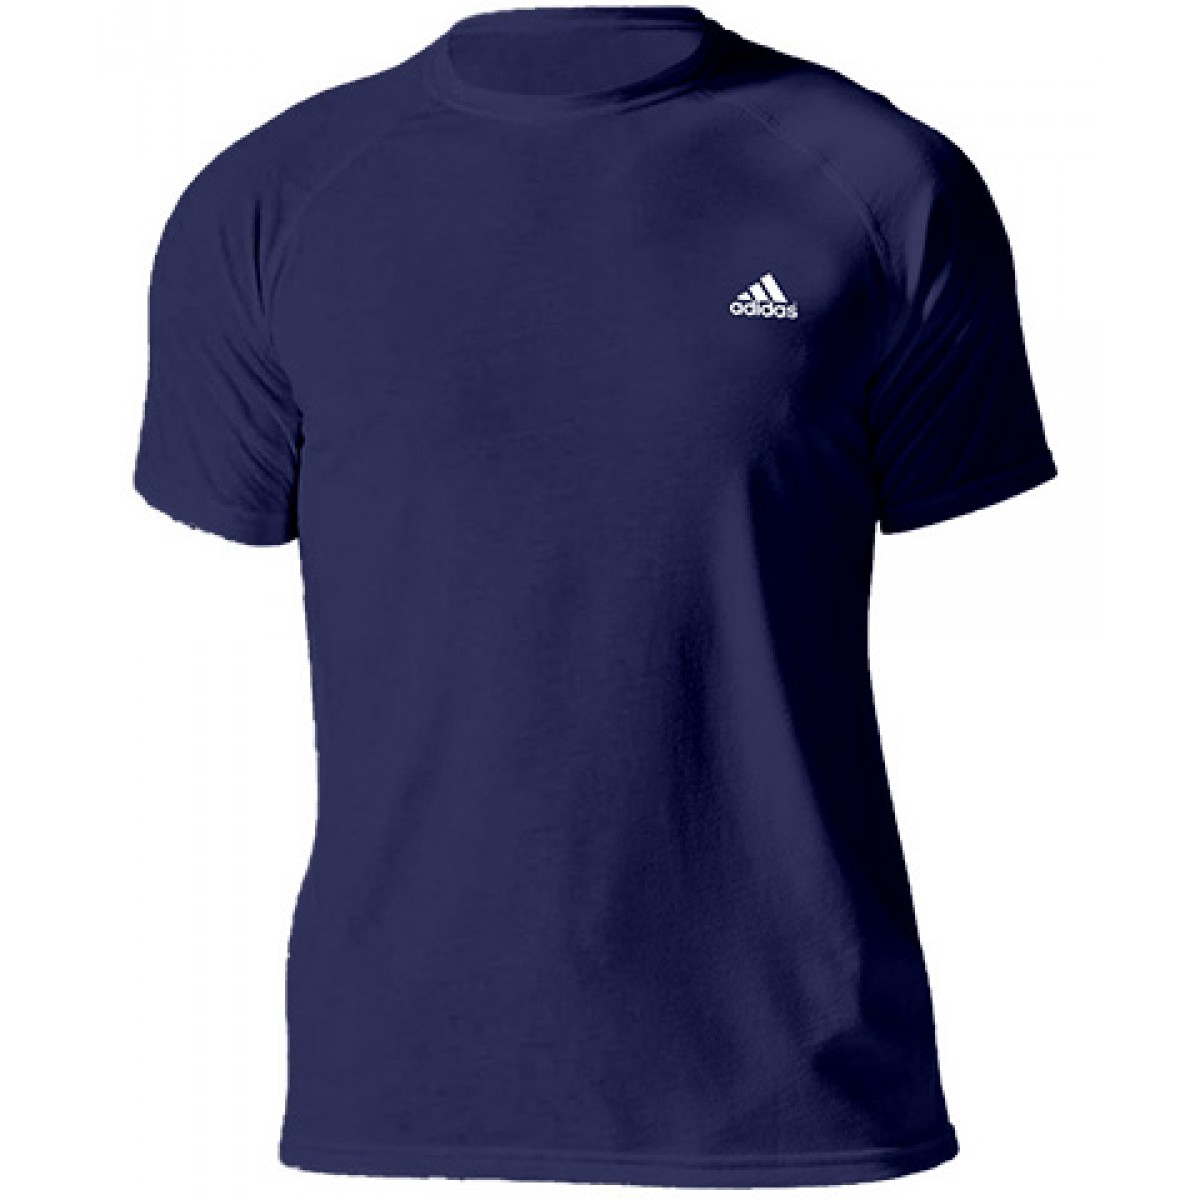 Adidas Embroidered Logo Essential Crew Neck T-shirt-Navy-S